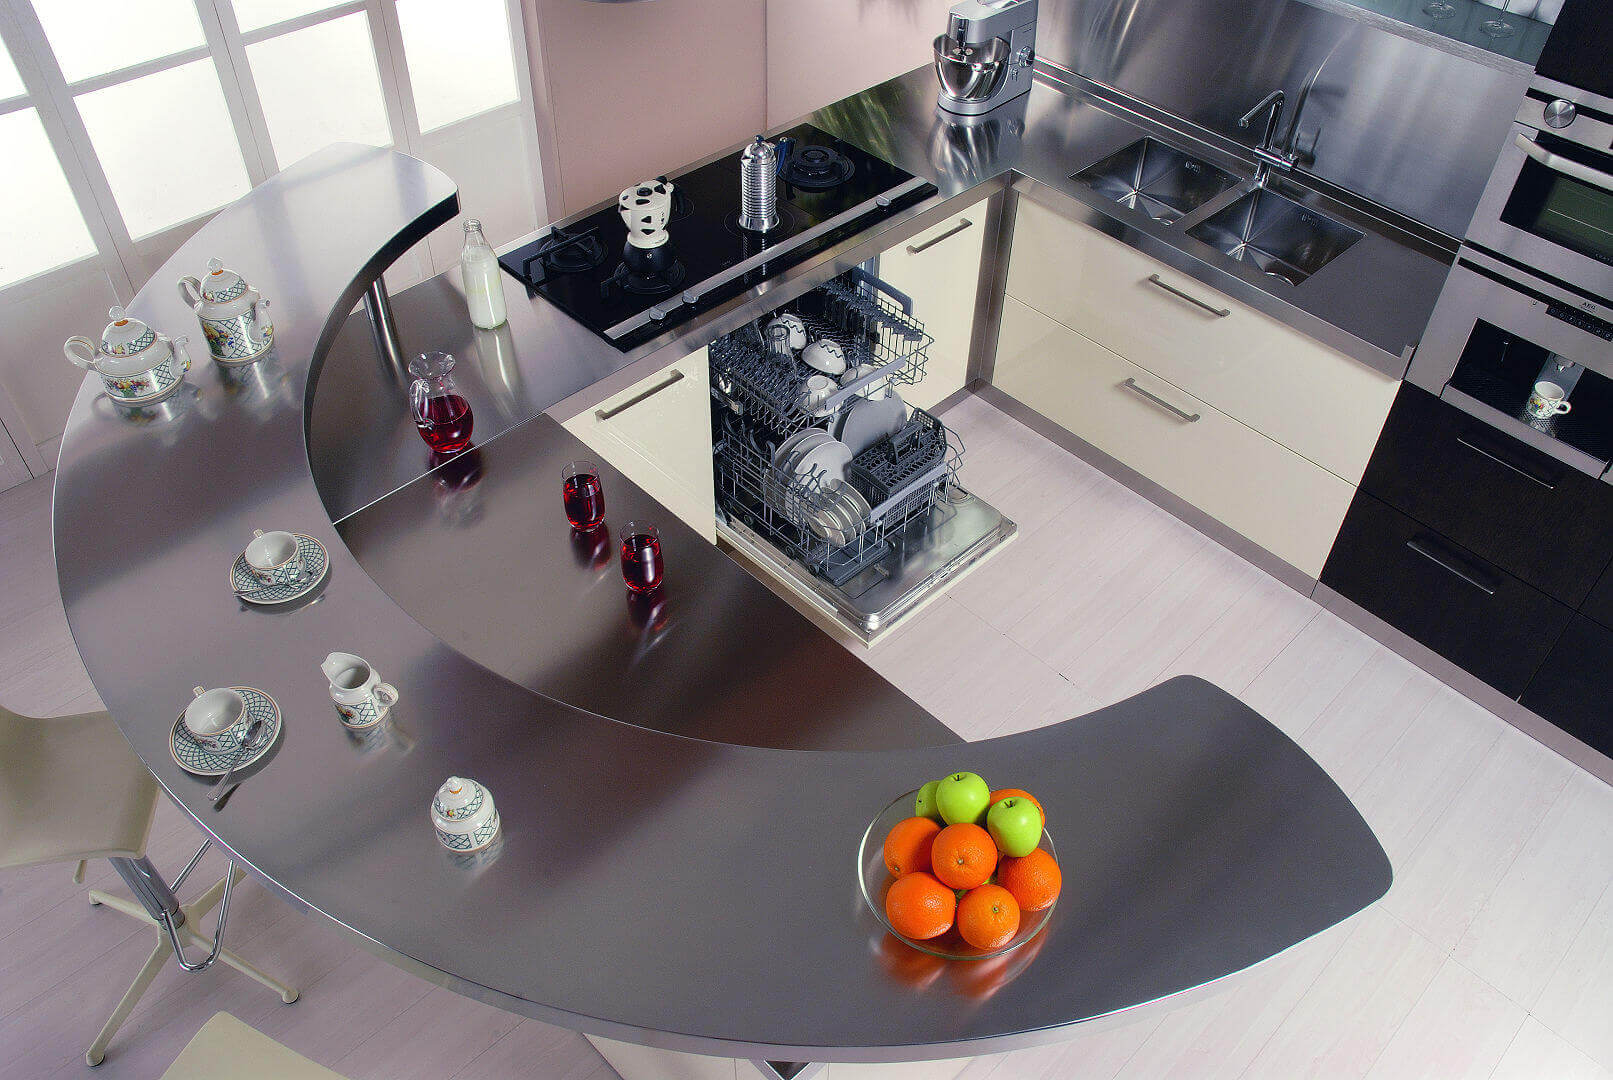 Arca Cucine Italy - Domestic stainless steel kitchens - 20 - Retunne - Dishwasher